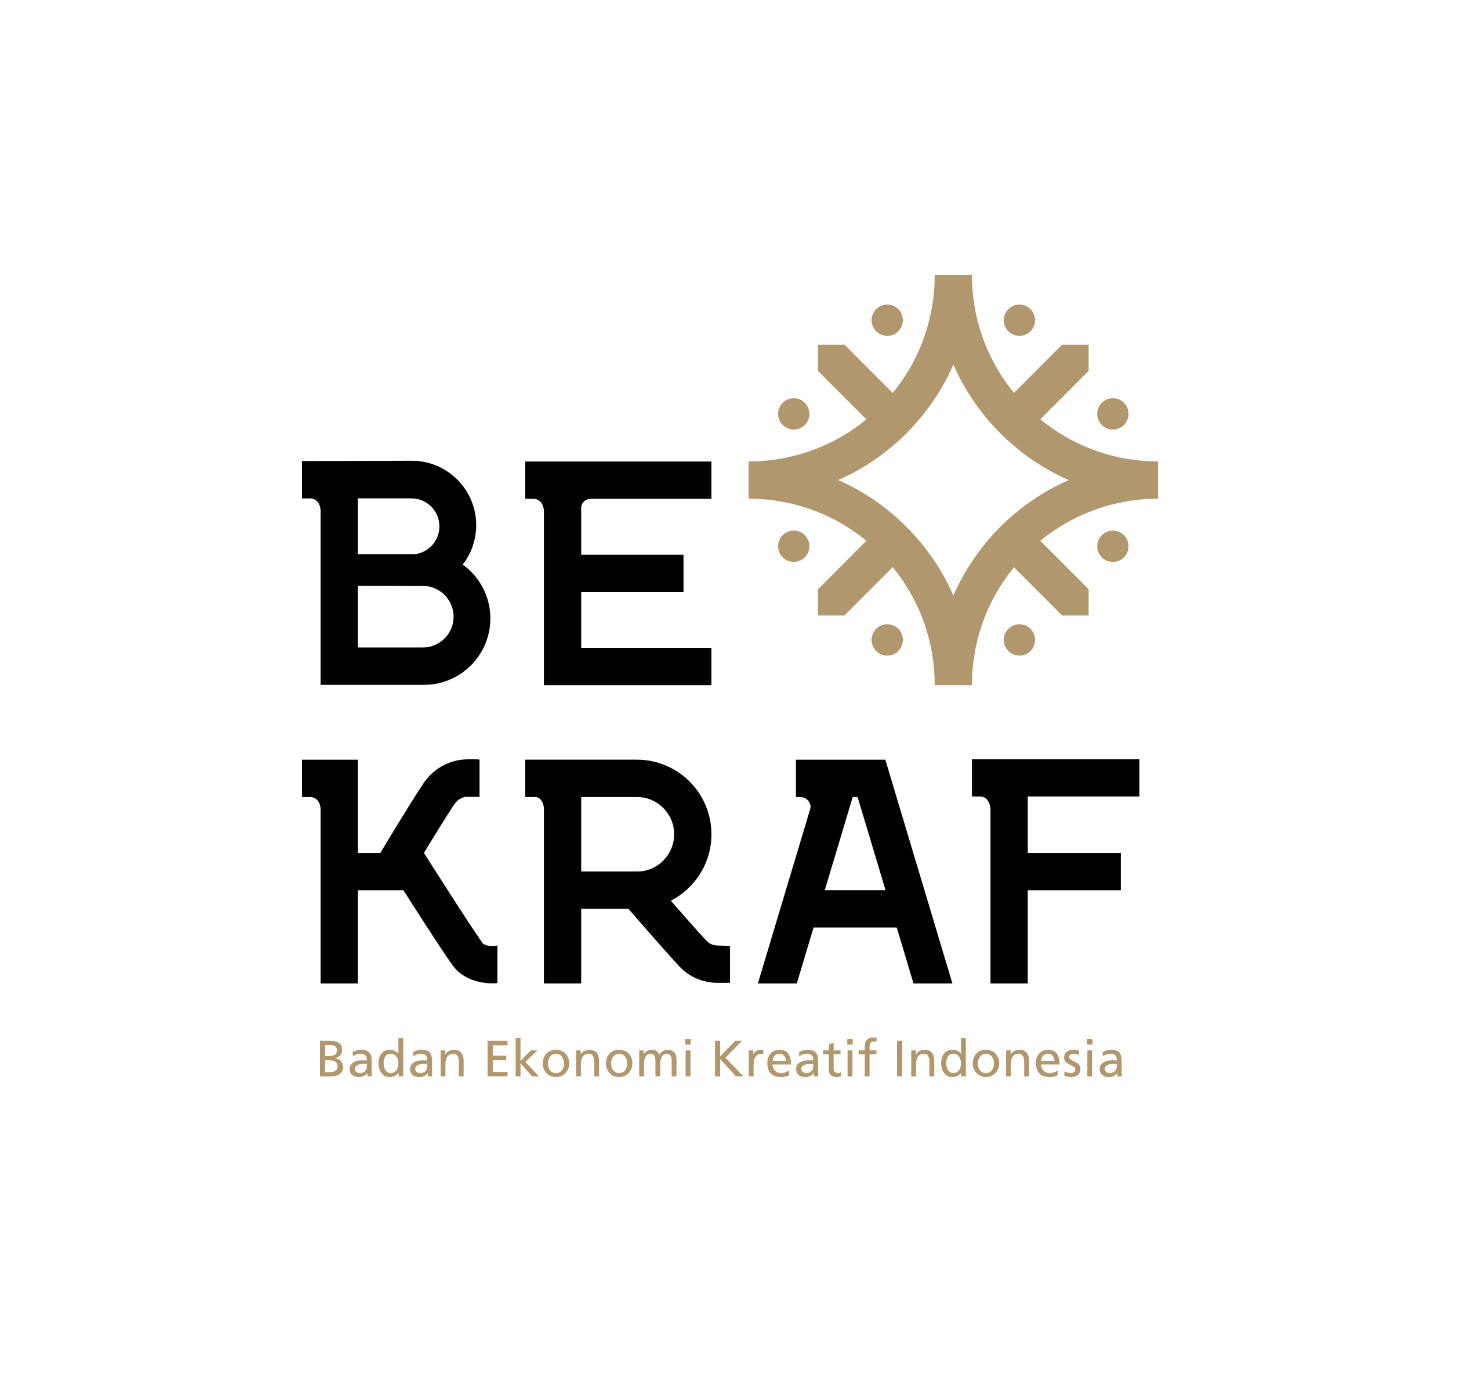 BEKRAF Developer Day 2019 - Gorontalo